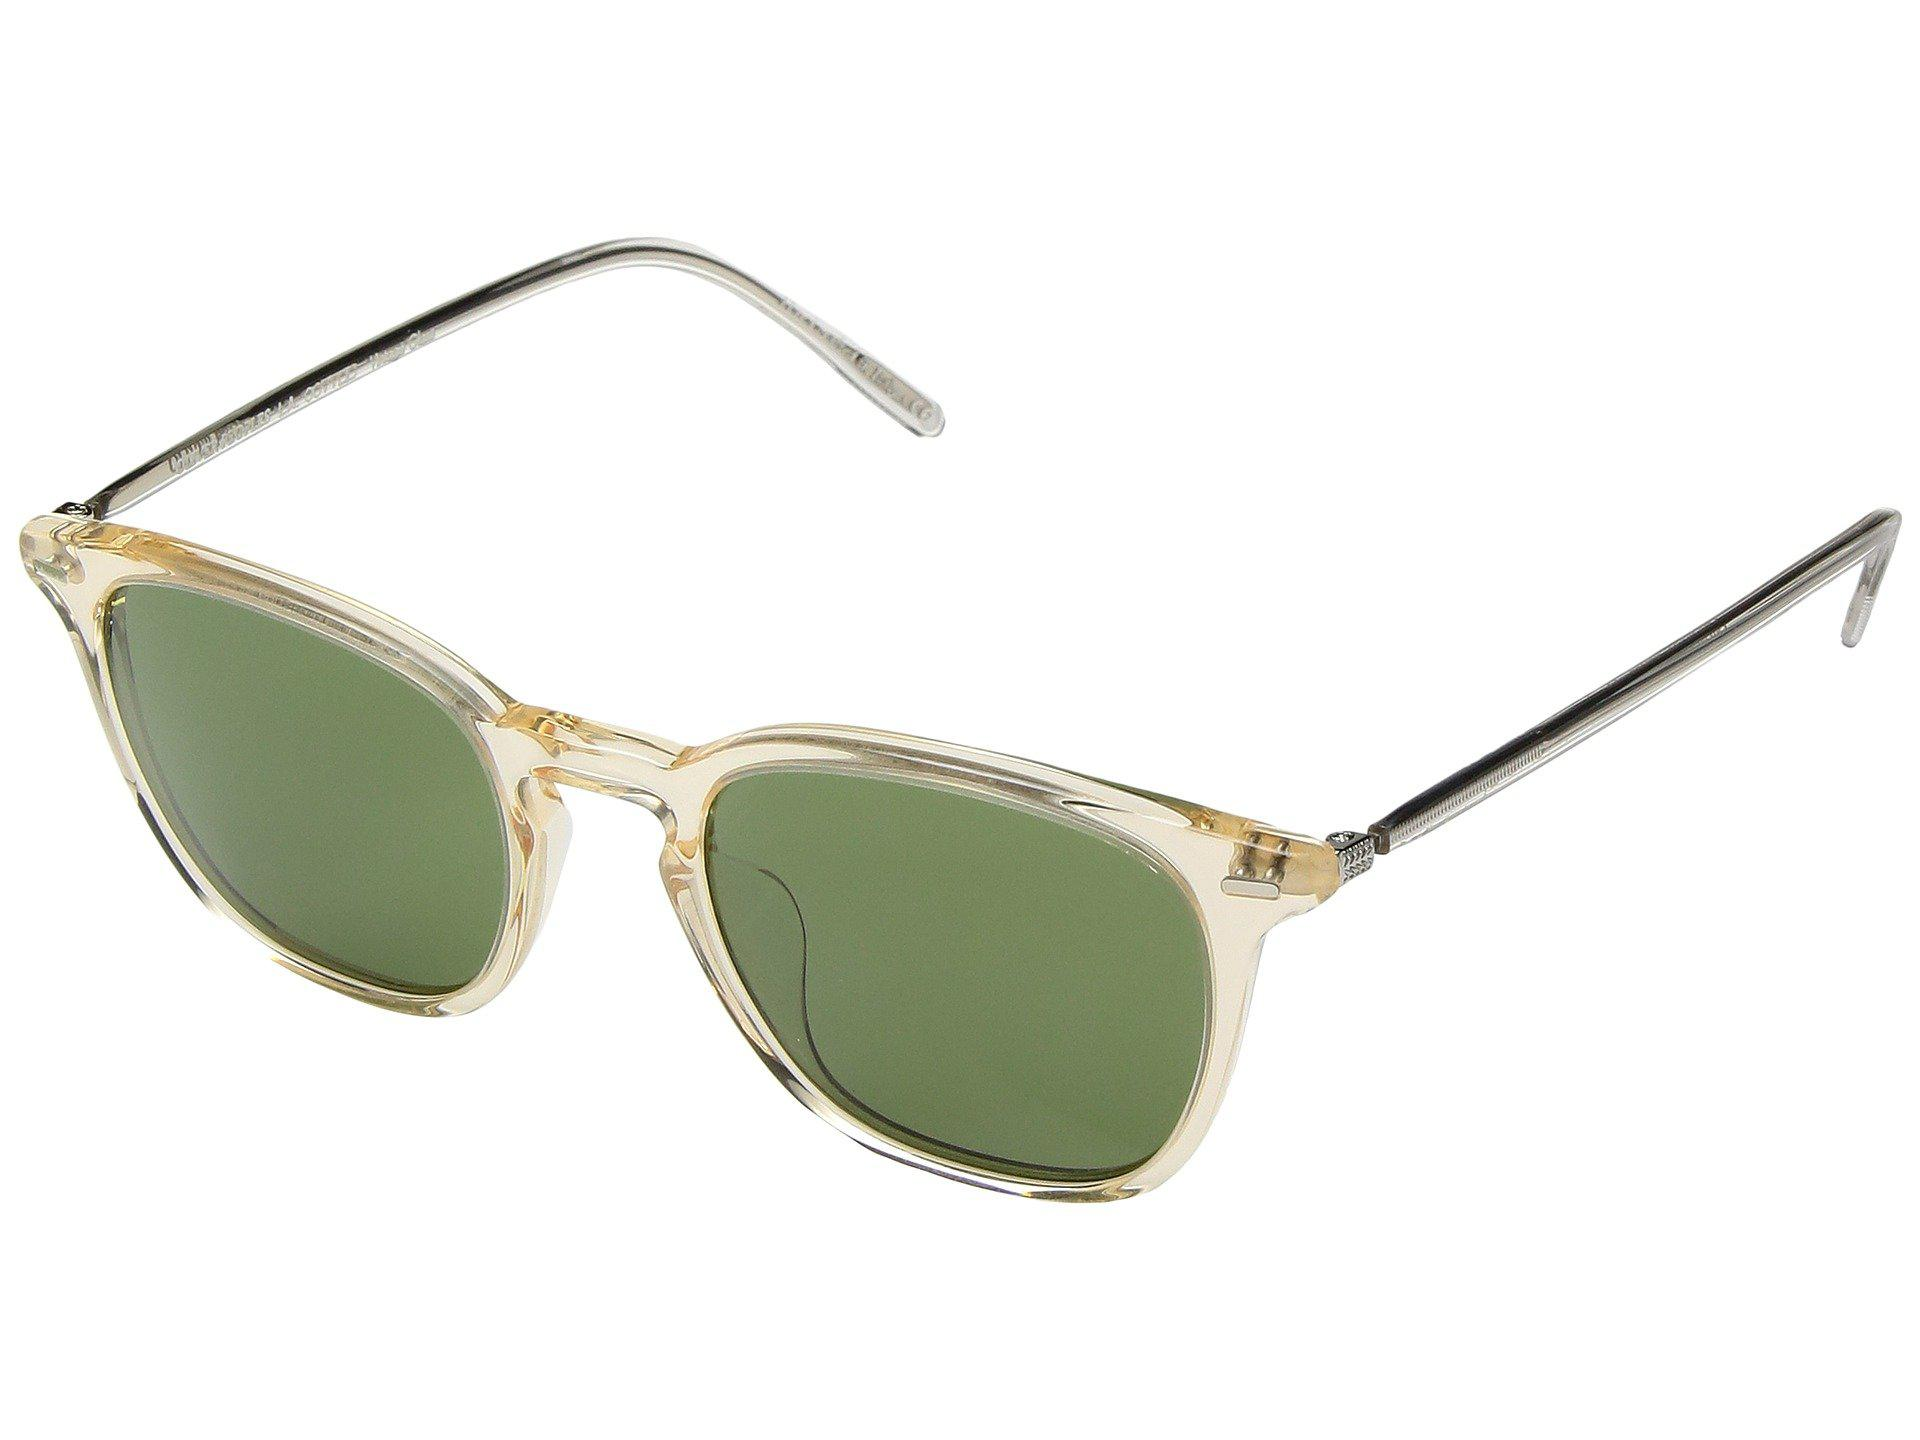 9057c78d00 Lyst - Oliver Peoples Heaton (black grahpite Polarized) Fashion ...